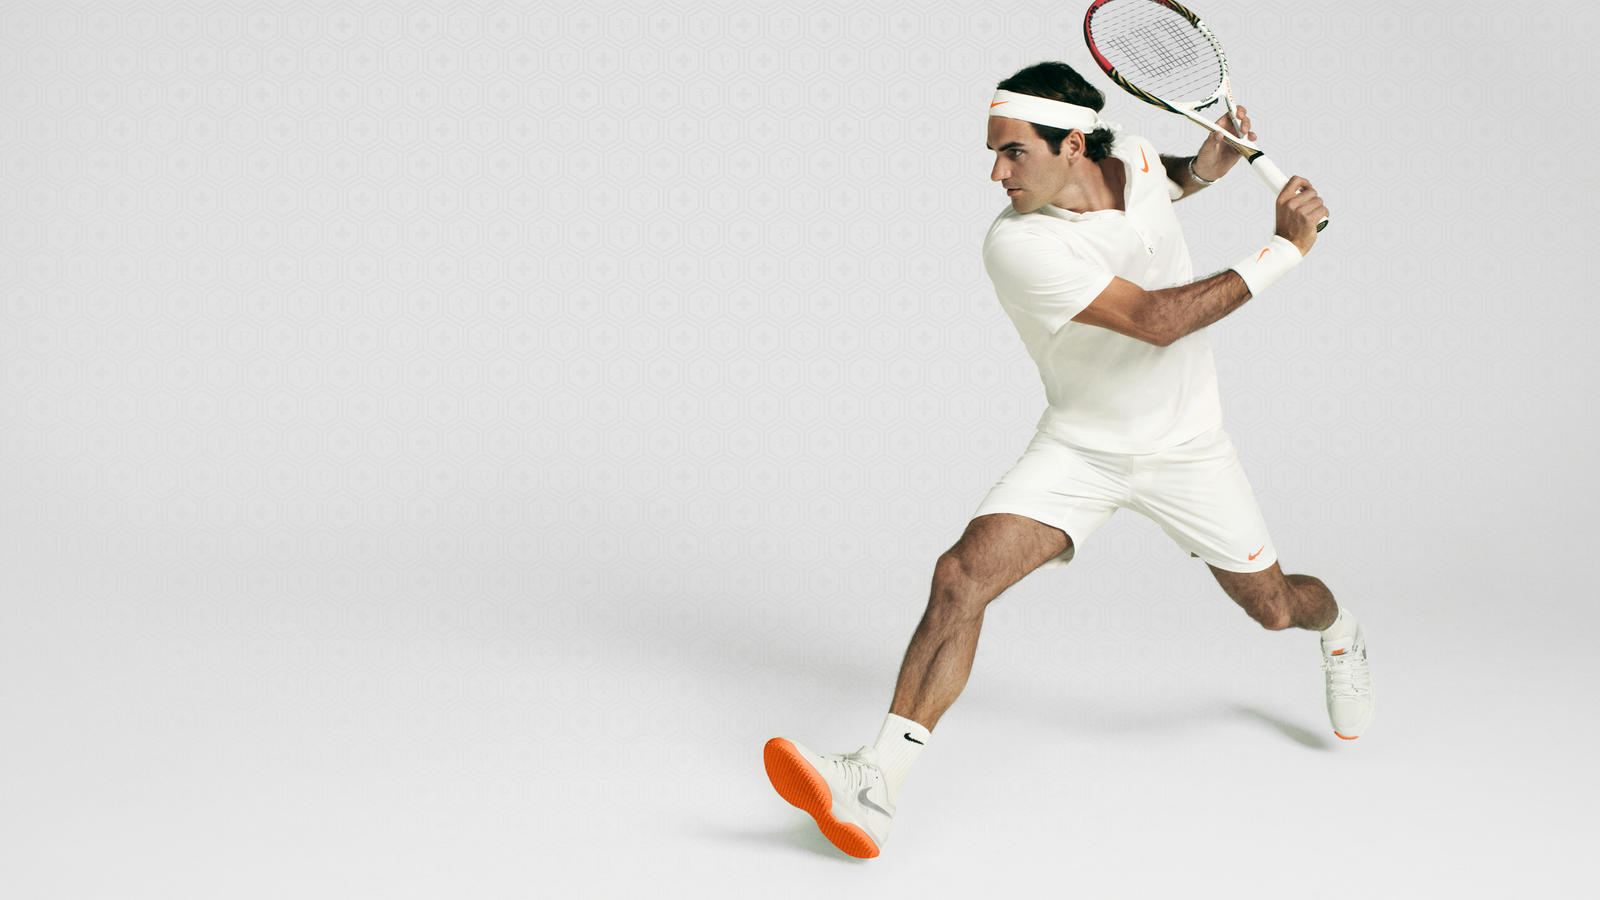 Nike Zoom Vapor 9 Tour Federer Action